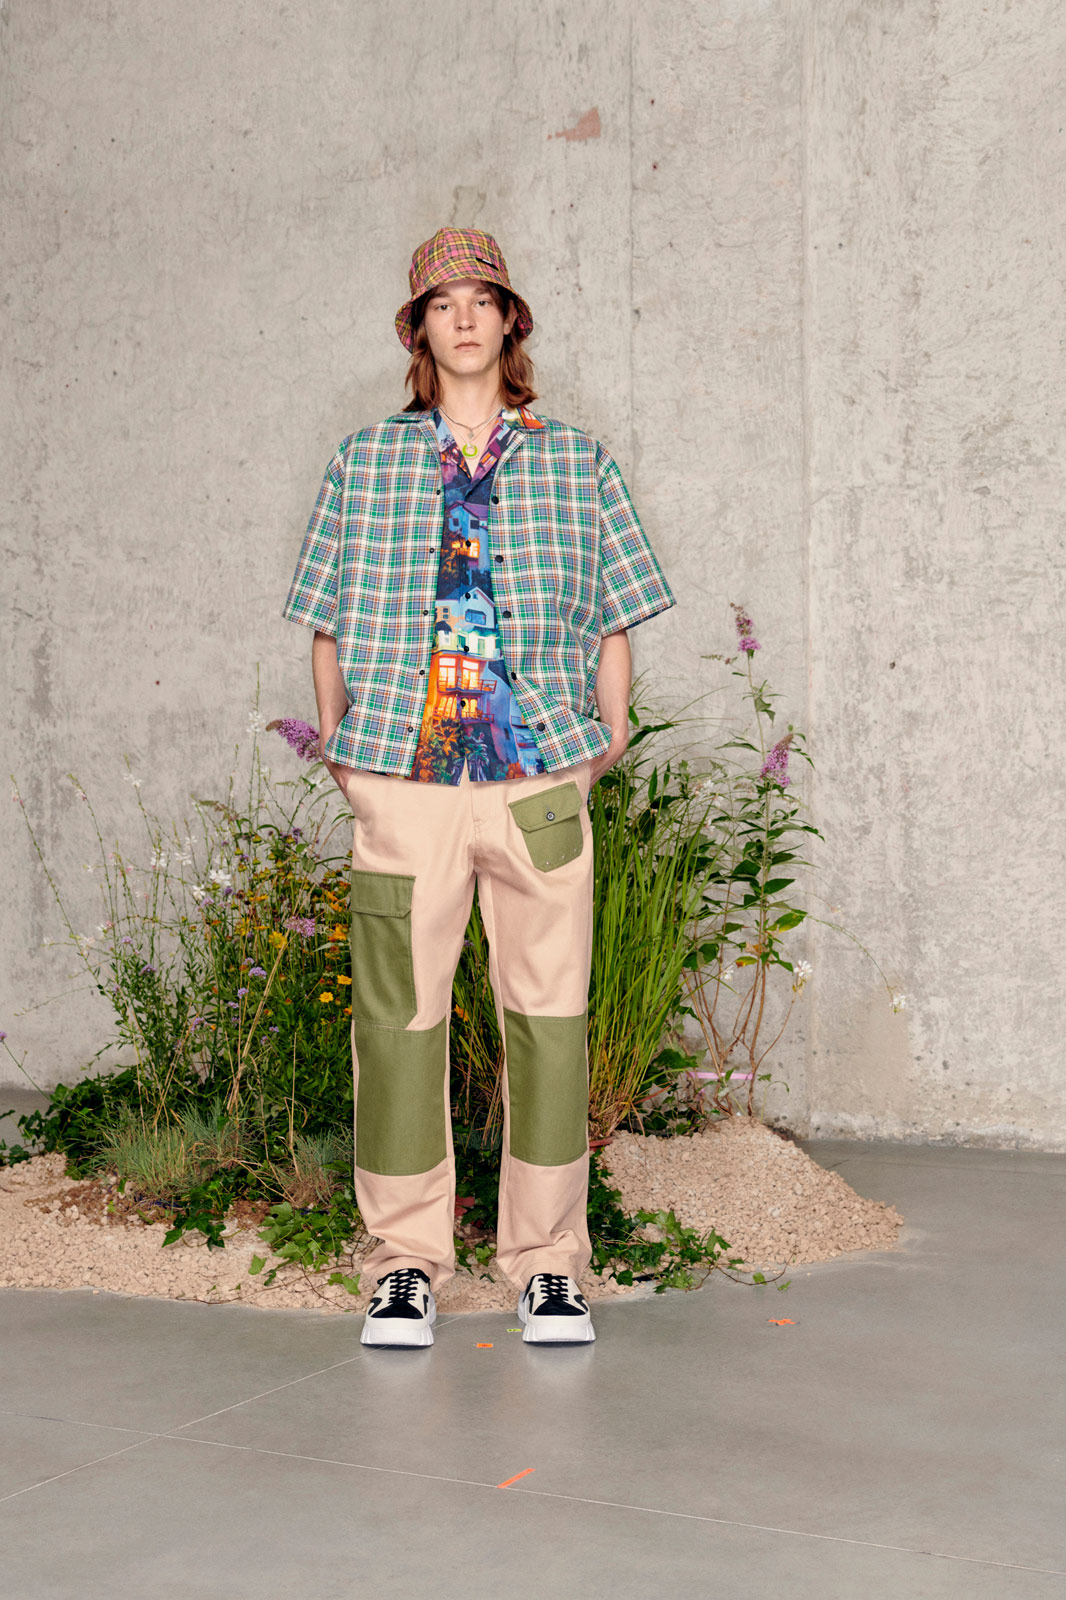 MSGM's Spring/Summer 2021 collection is an anticipatory celebration of life after lockdown